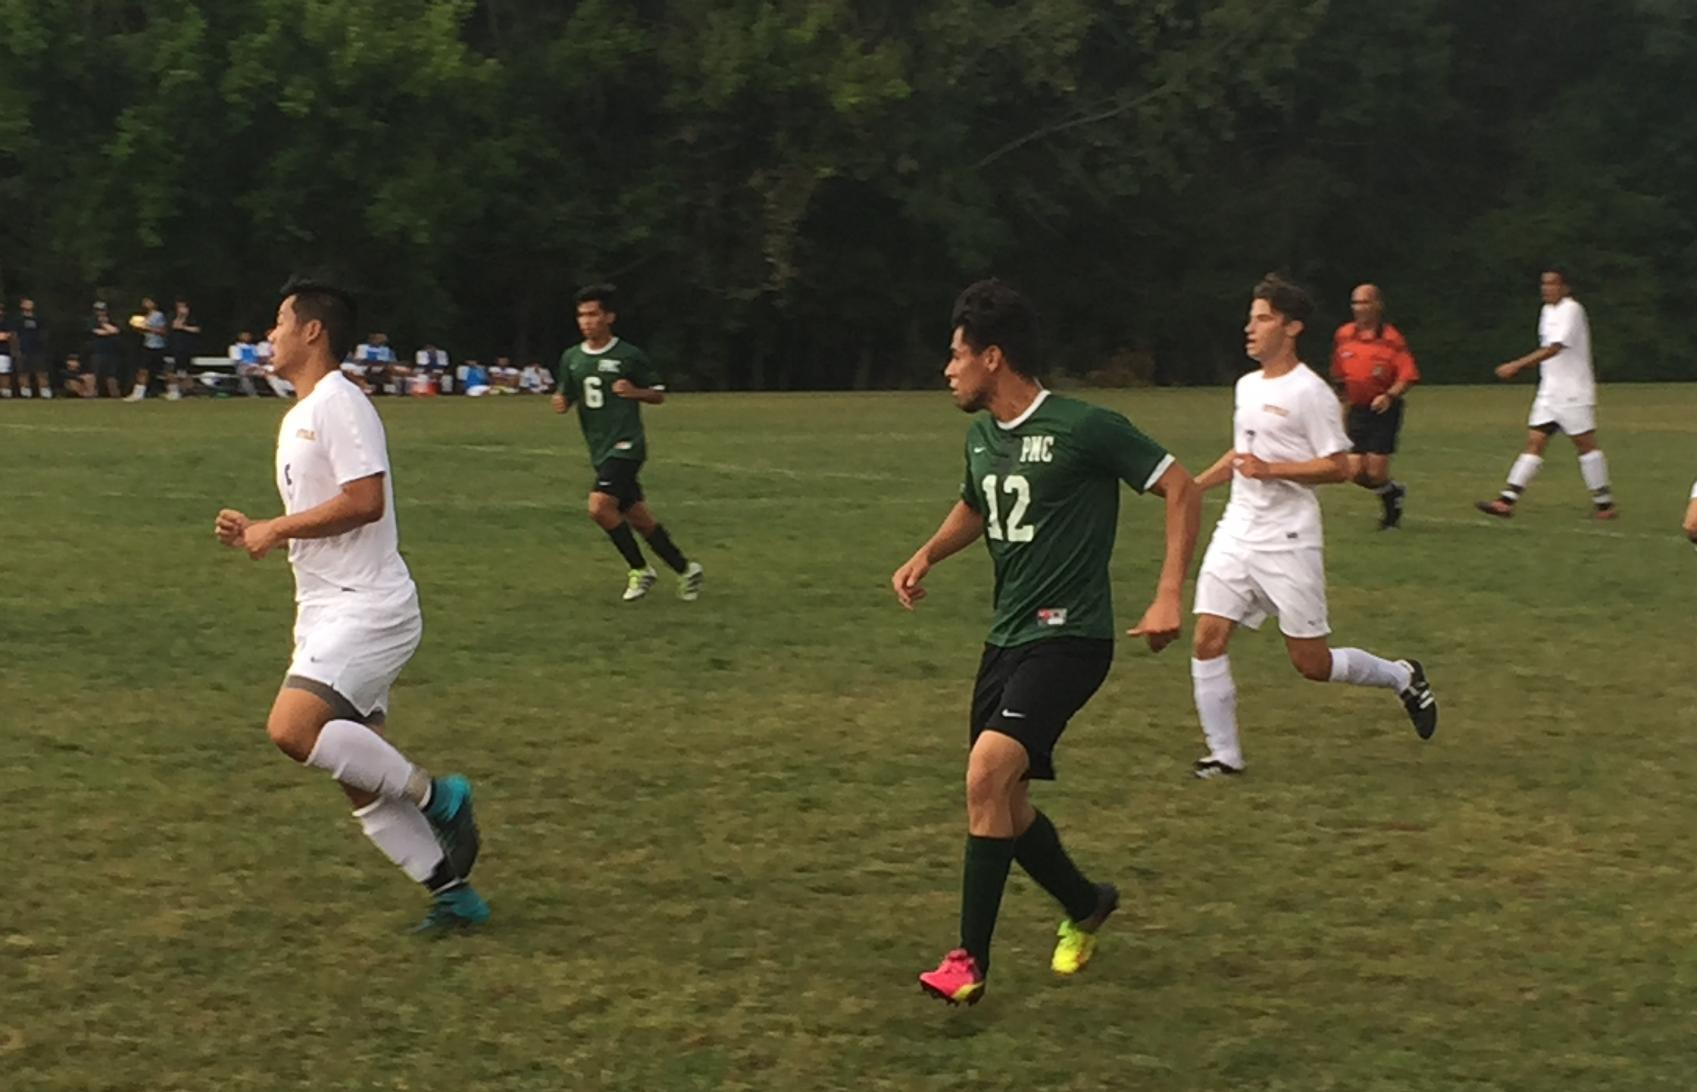 Pine Manor Stifled by Hot Goalie and Lose 3-0 at Rivier